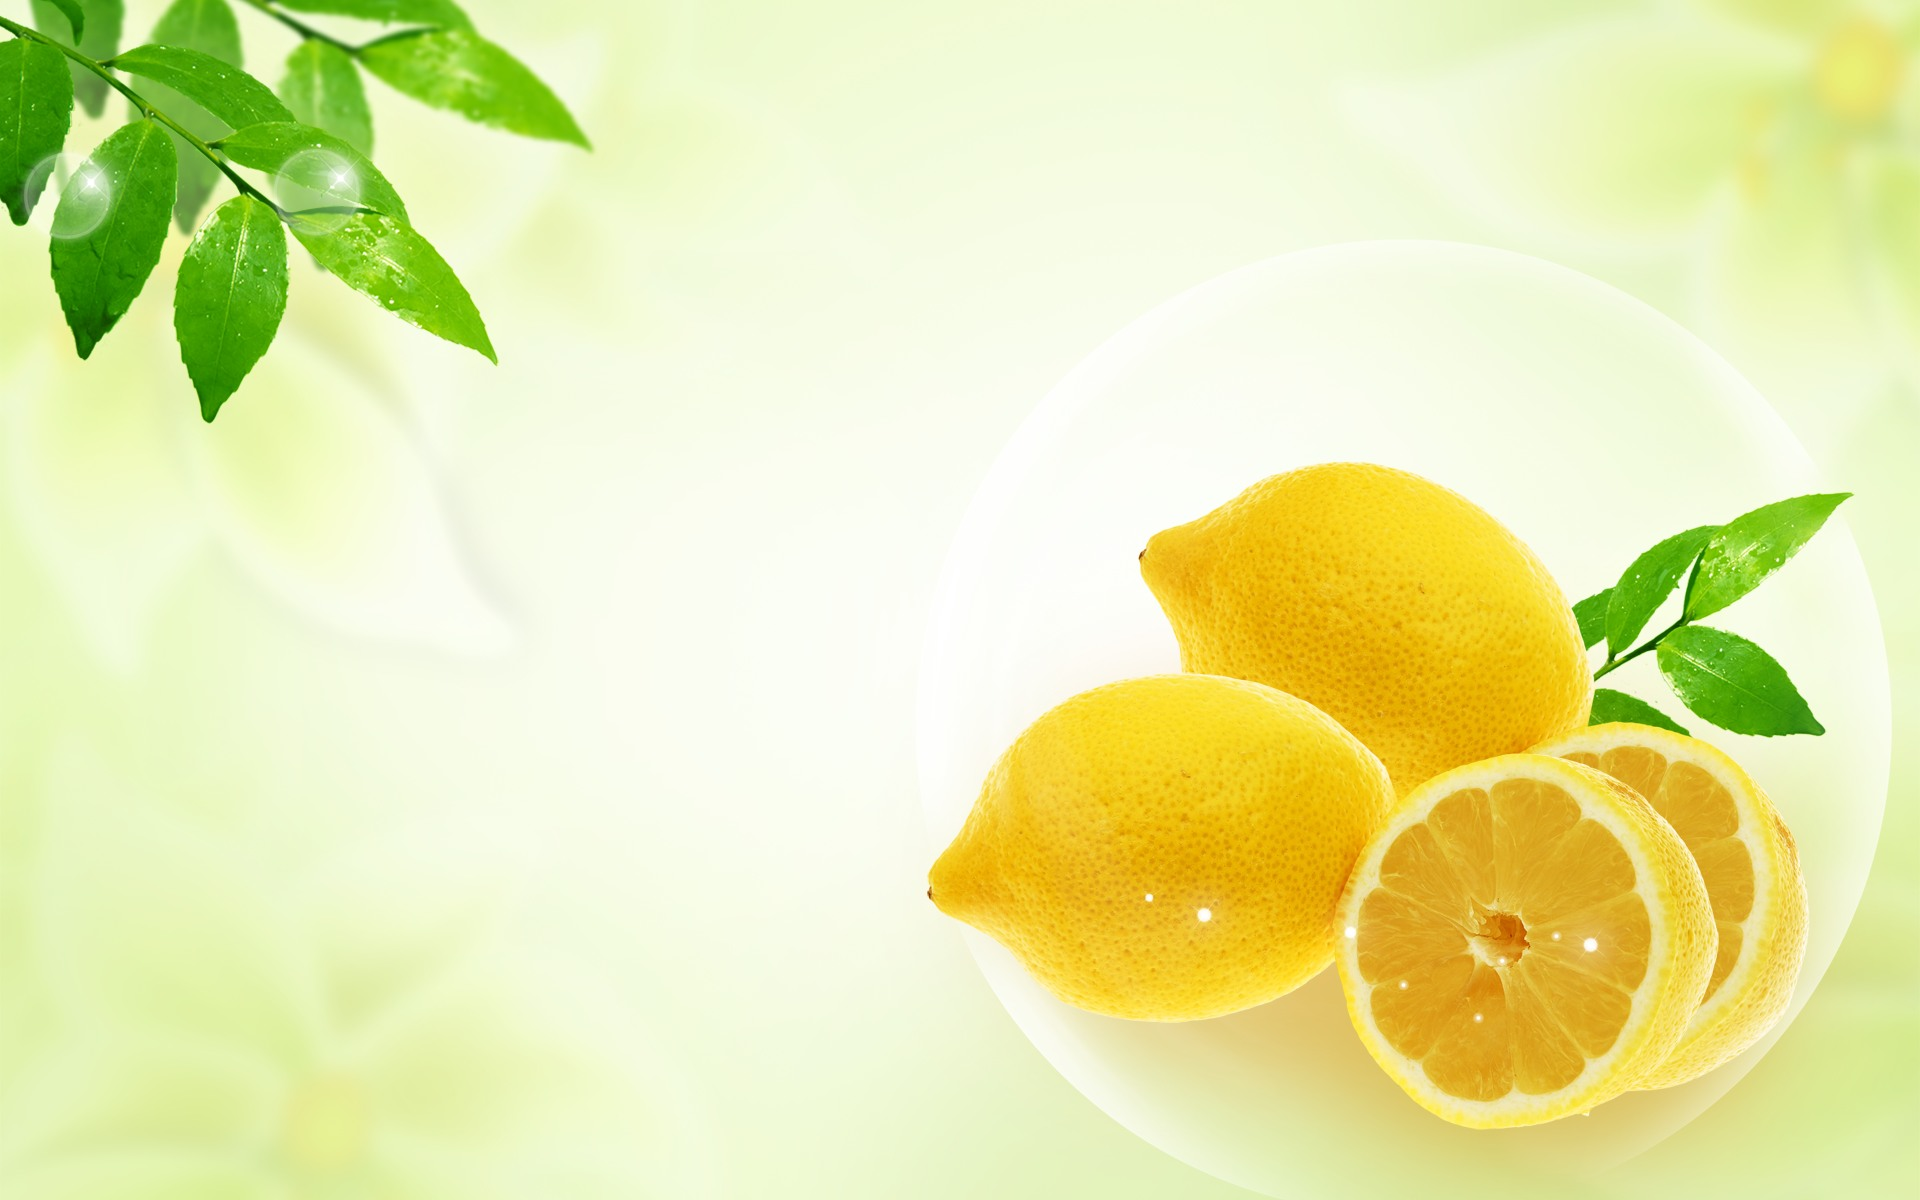 Cool Lemon Wallpaper